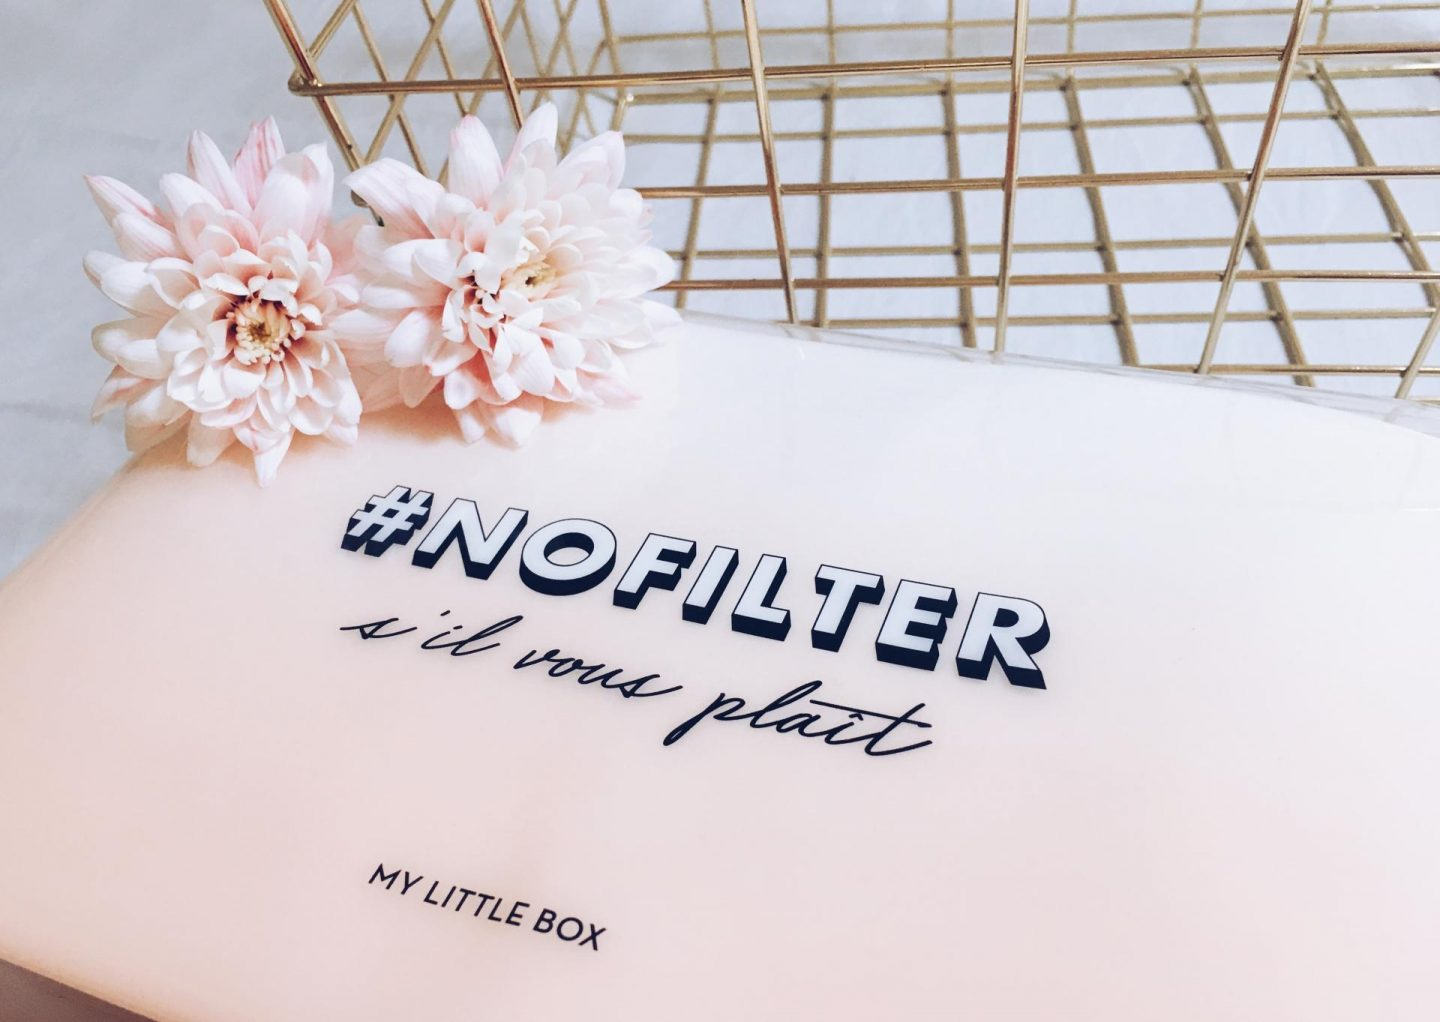 My Little Box: The subscription box for a little bit of everything